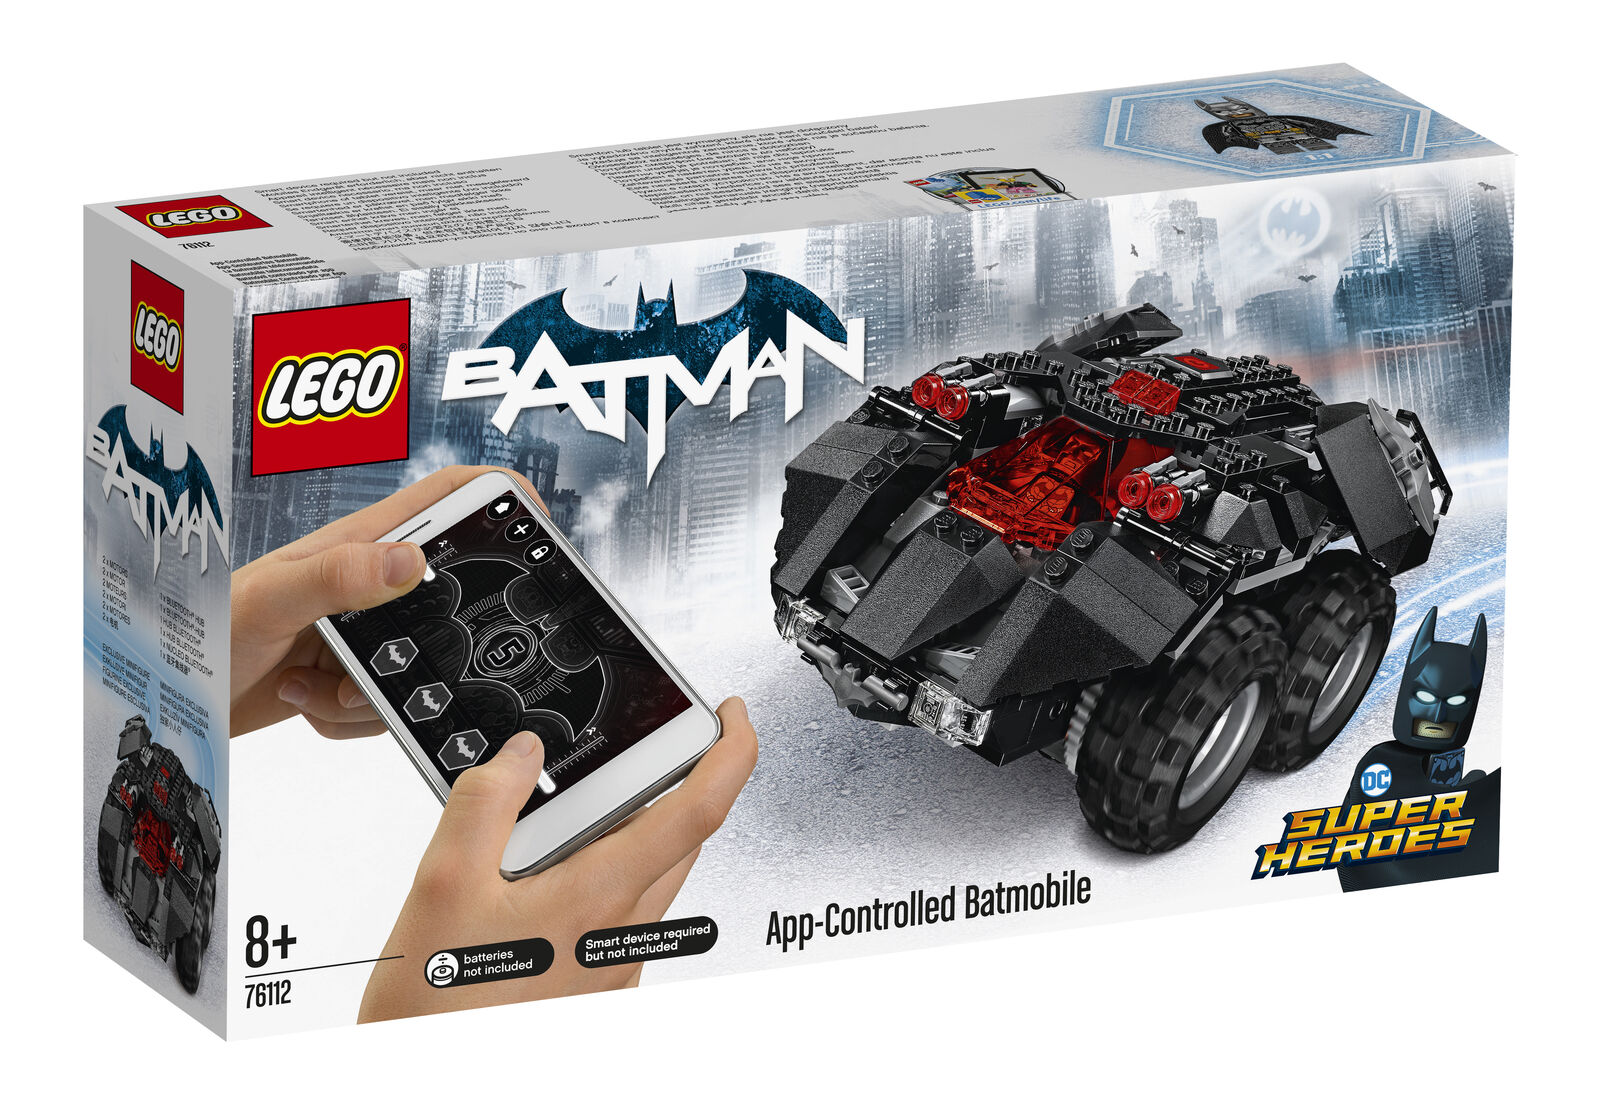 New Lego DC Comics Super Heroes App-Controlled Batmobile (76112)